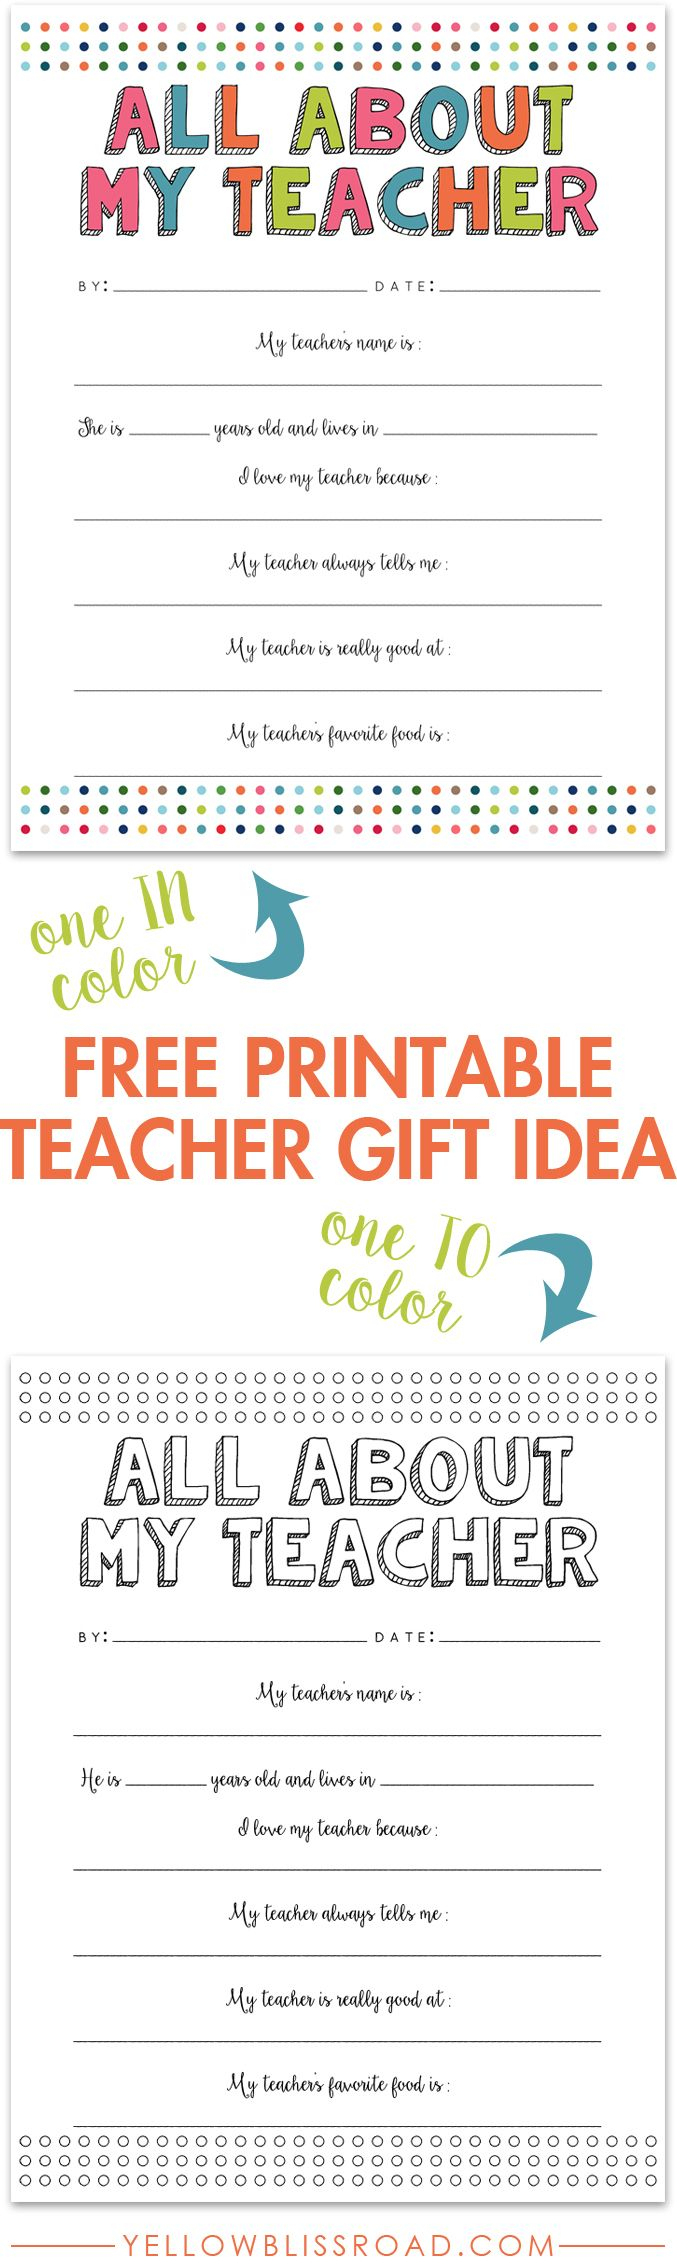 All About My Teacher Free Printable   Best Of Pinterest   Pinterest - All About My Teacher Free Printable